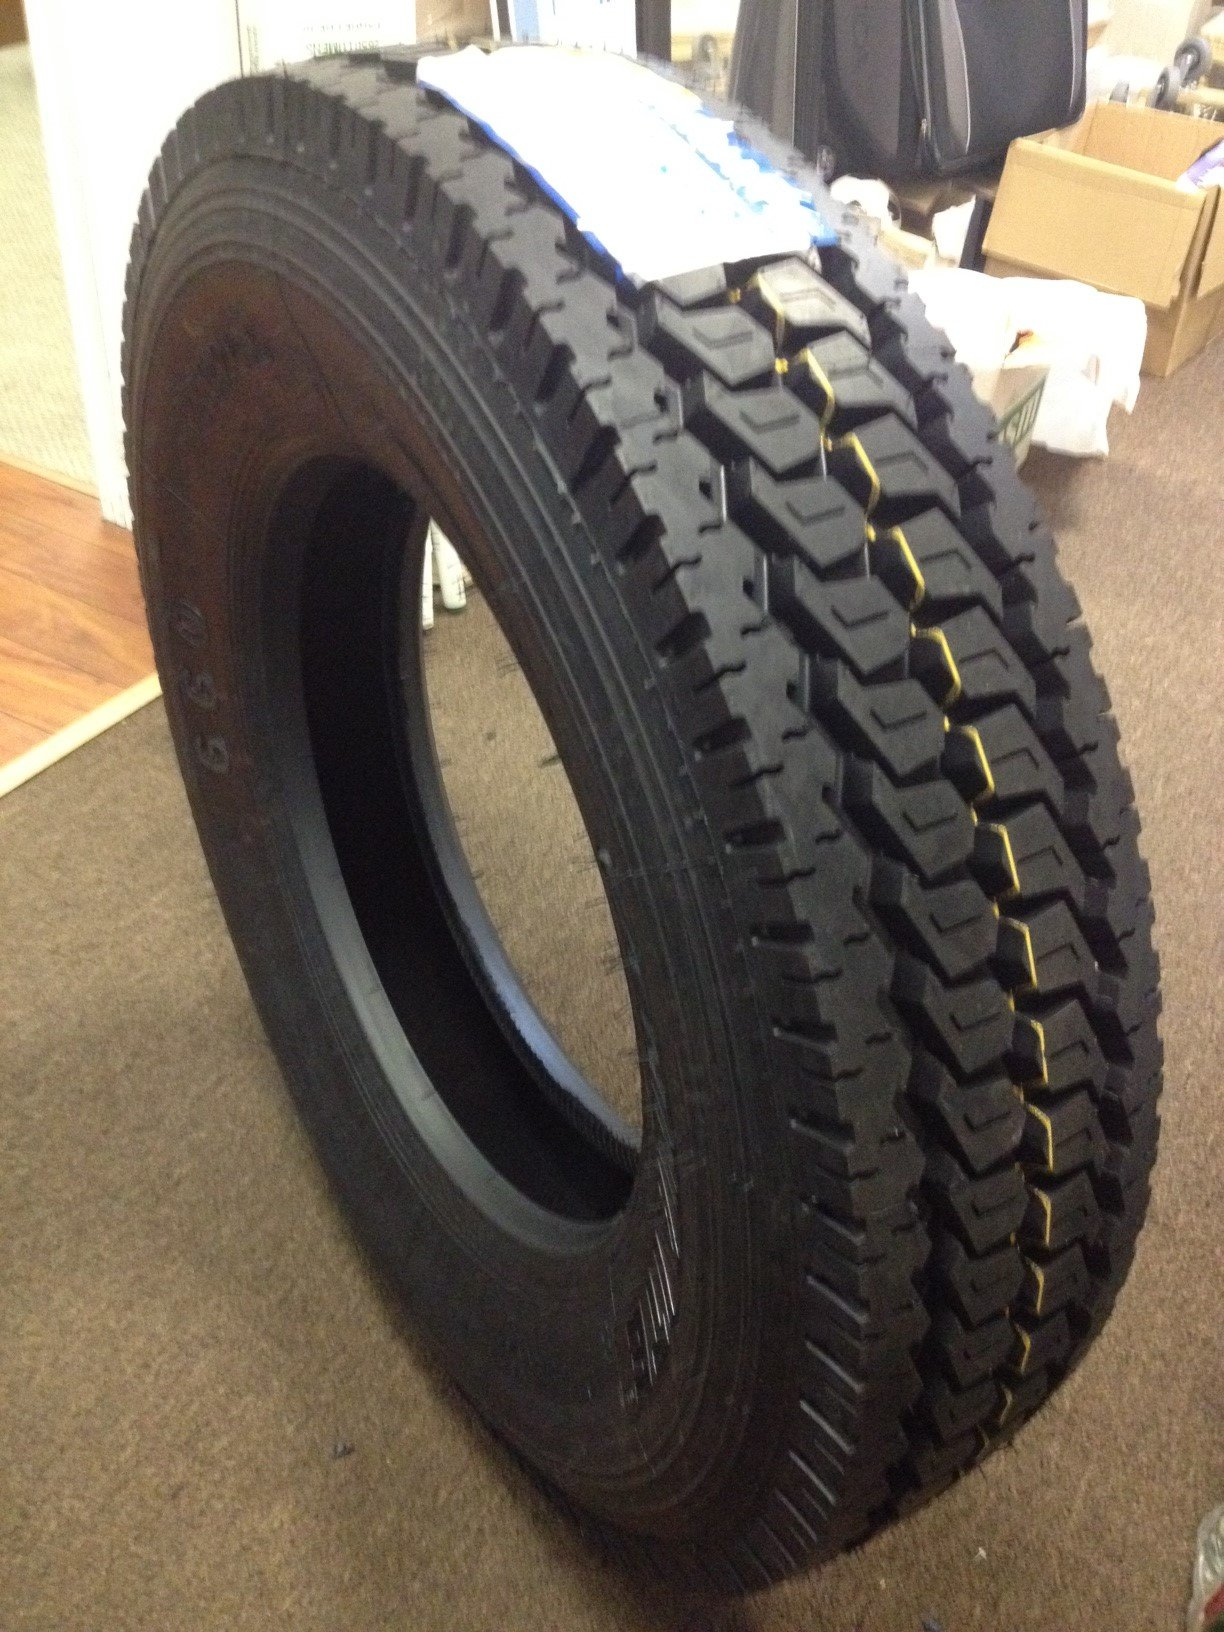 11R24.5 ROAD WARRIOR RADIAL (8 - DRIVE TIRES) 16 PLY RATING